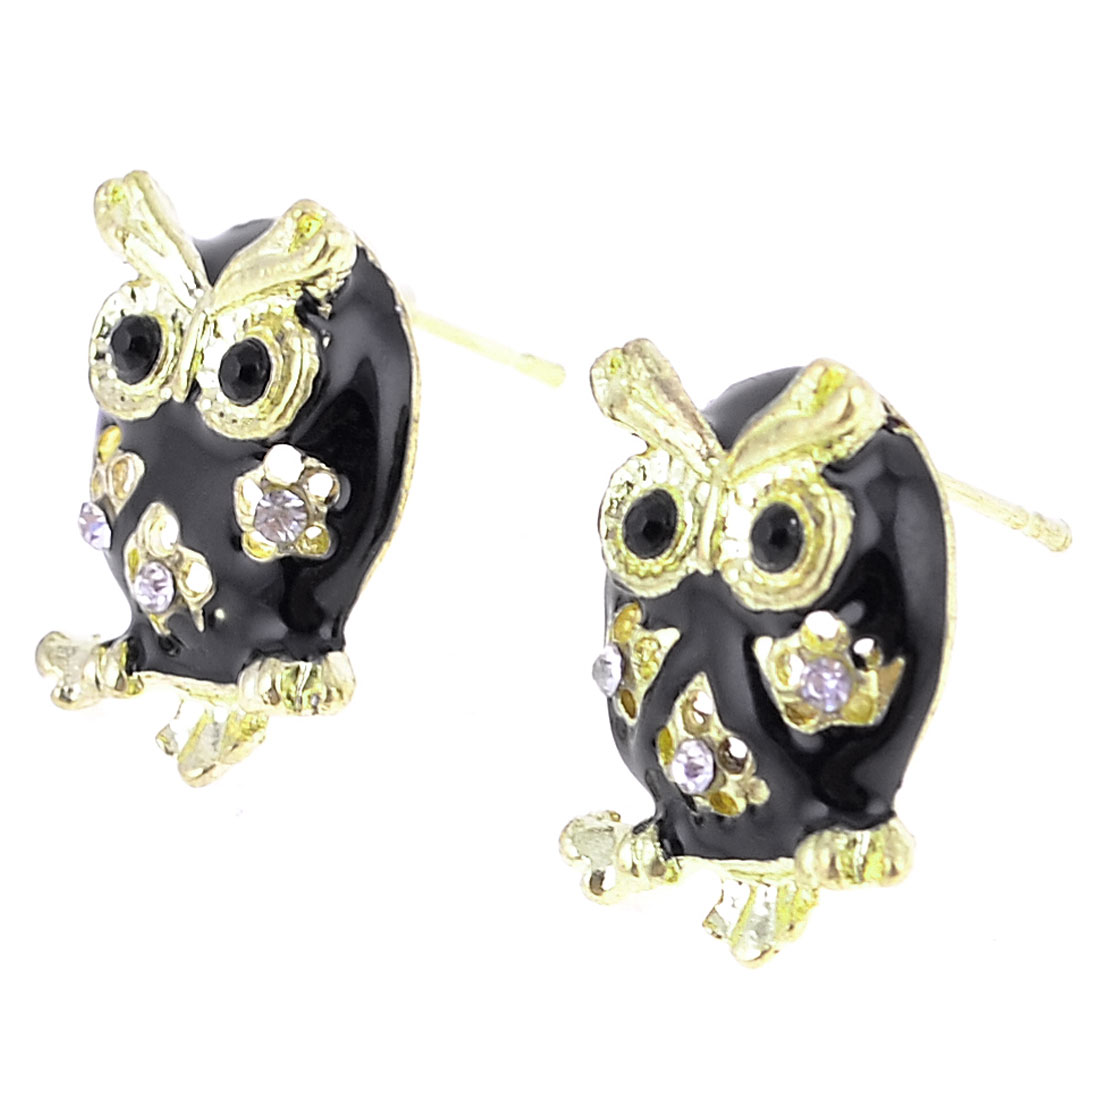 Pair Ear Ornament Owl Detail Alloy Earbob Earrings for Lady